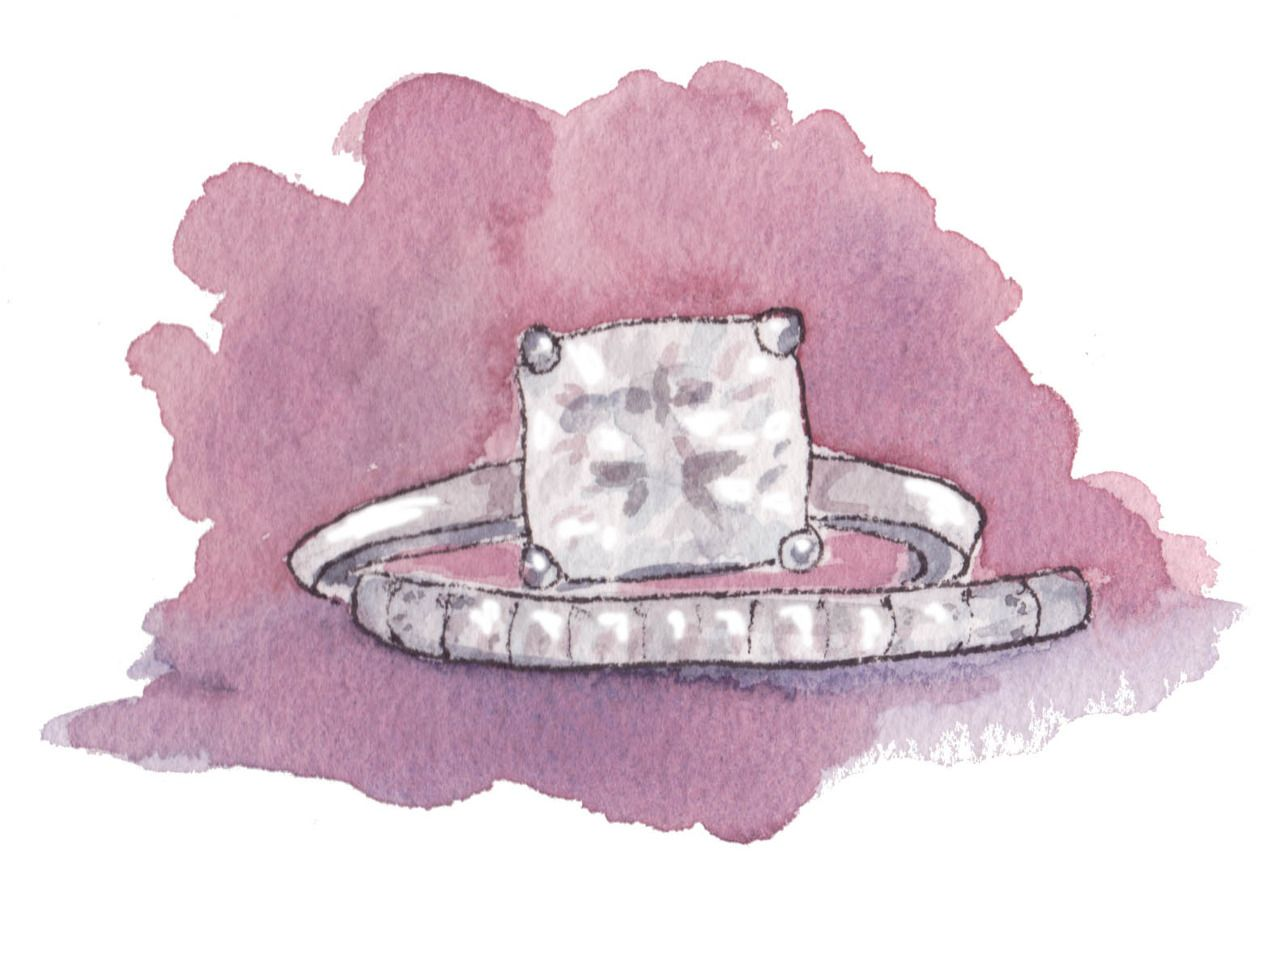 fashion illustration - engagement ring | .Etch a Sketch. | Pinterest ...